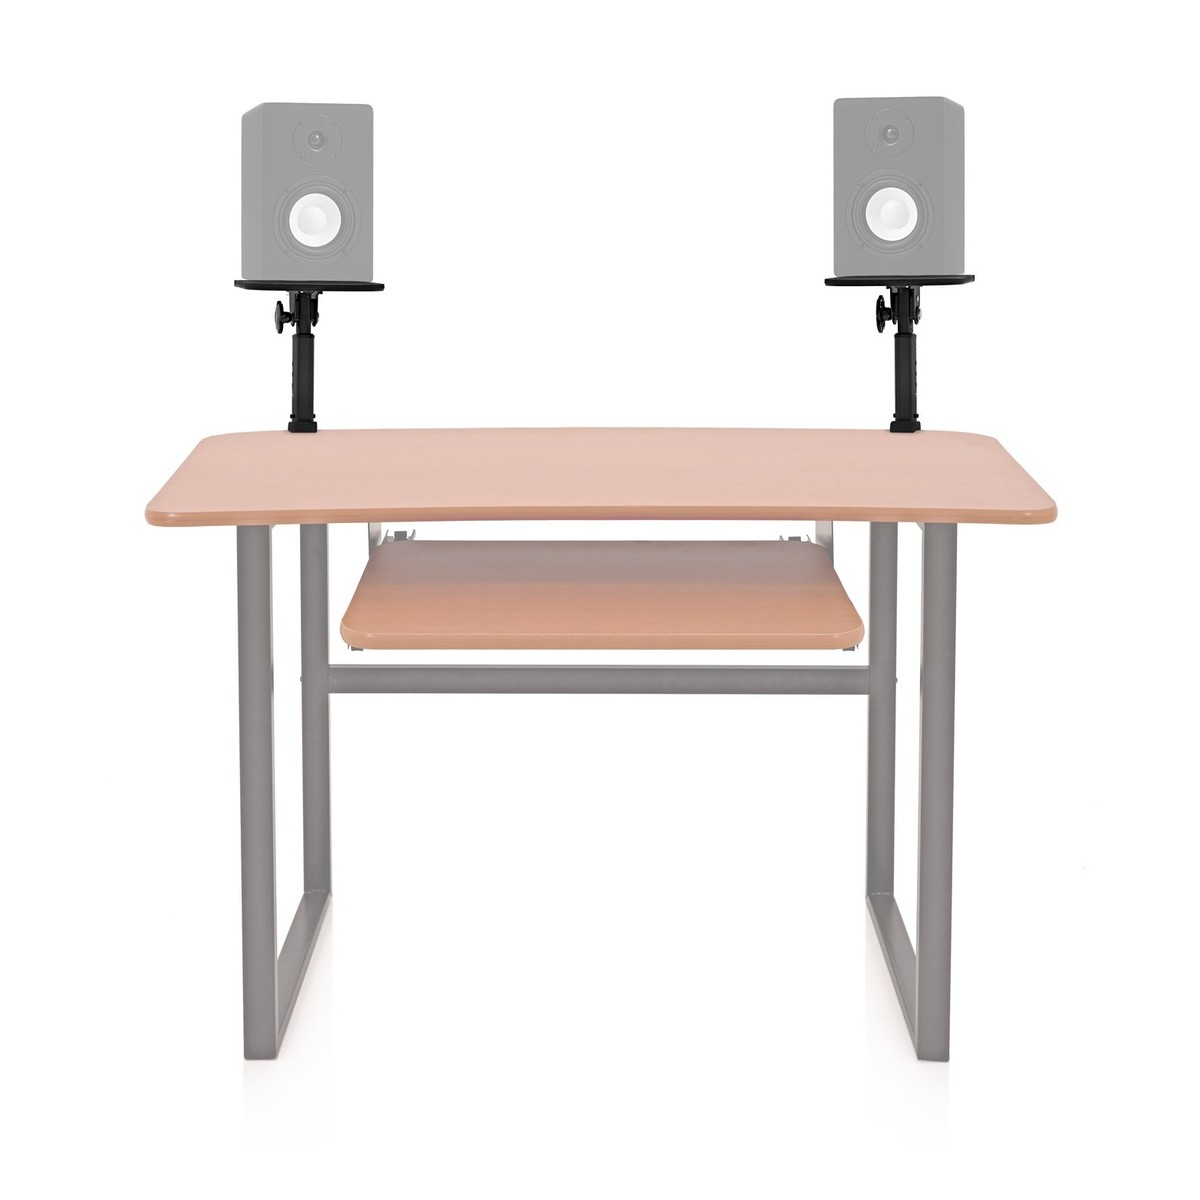 desk clamp monitor speaker stands by gear4music at gear4music. Black Bedroom Furniture Sets. Home Design Ideas